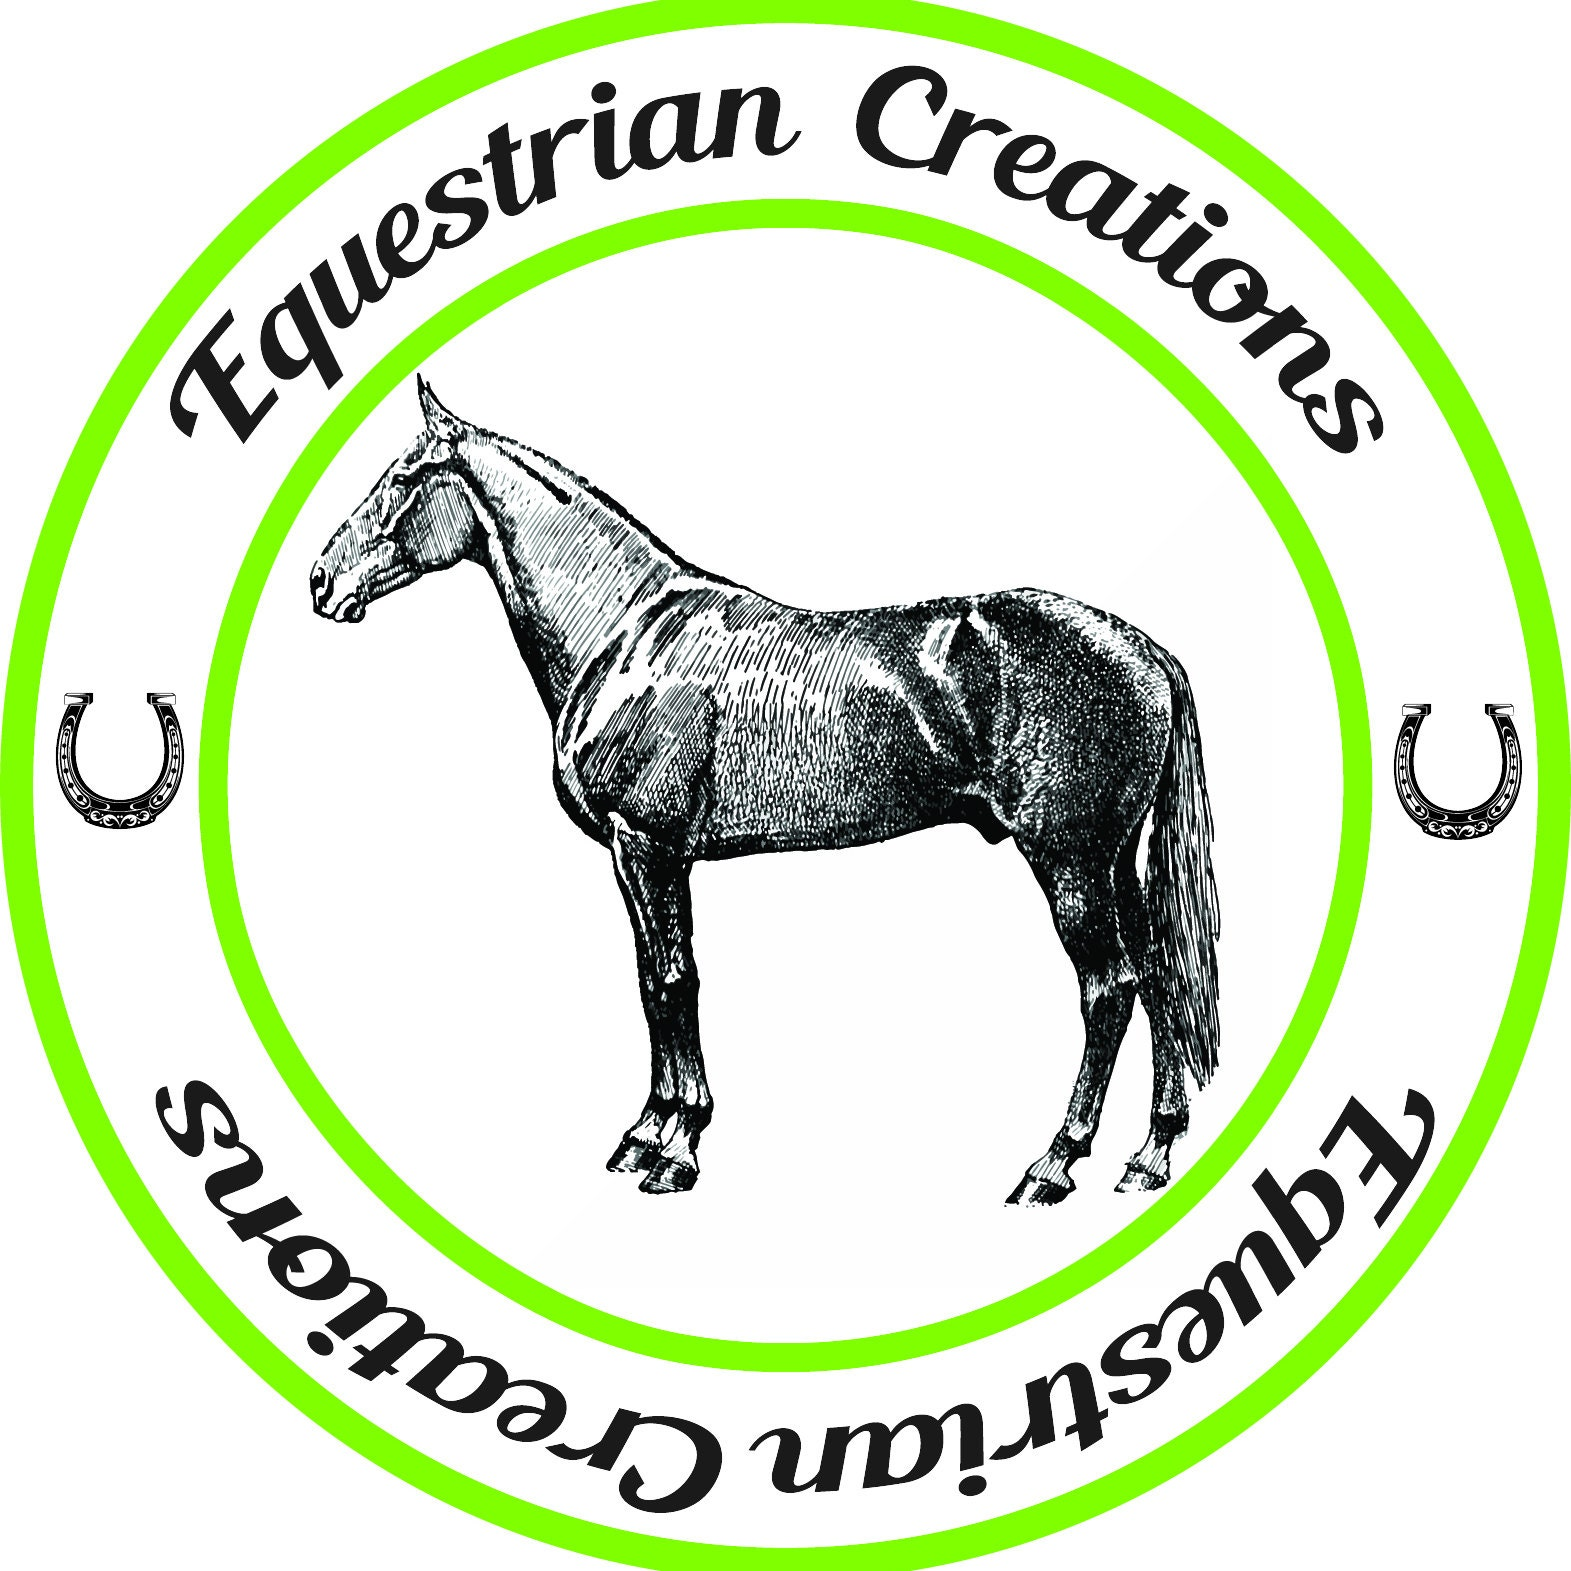 Equestrian Creations